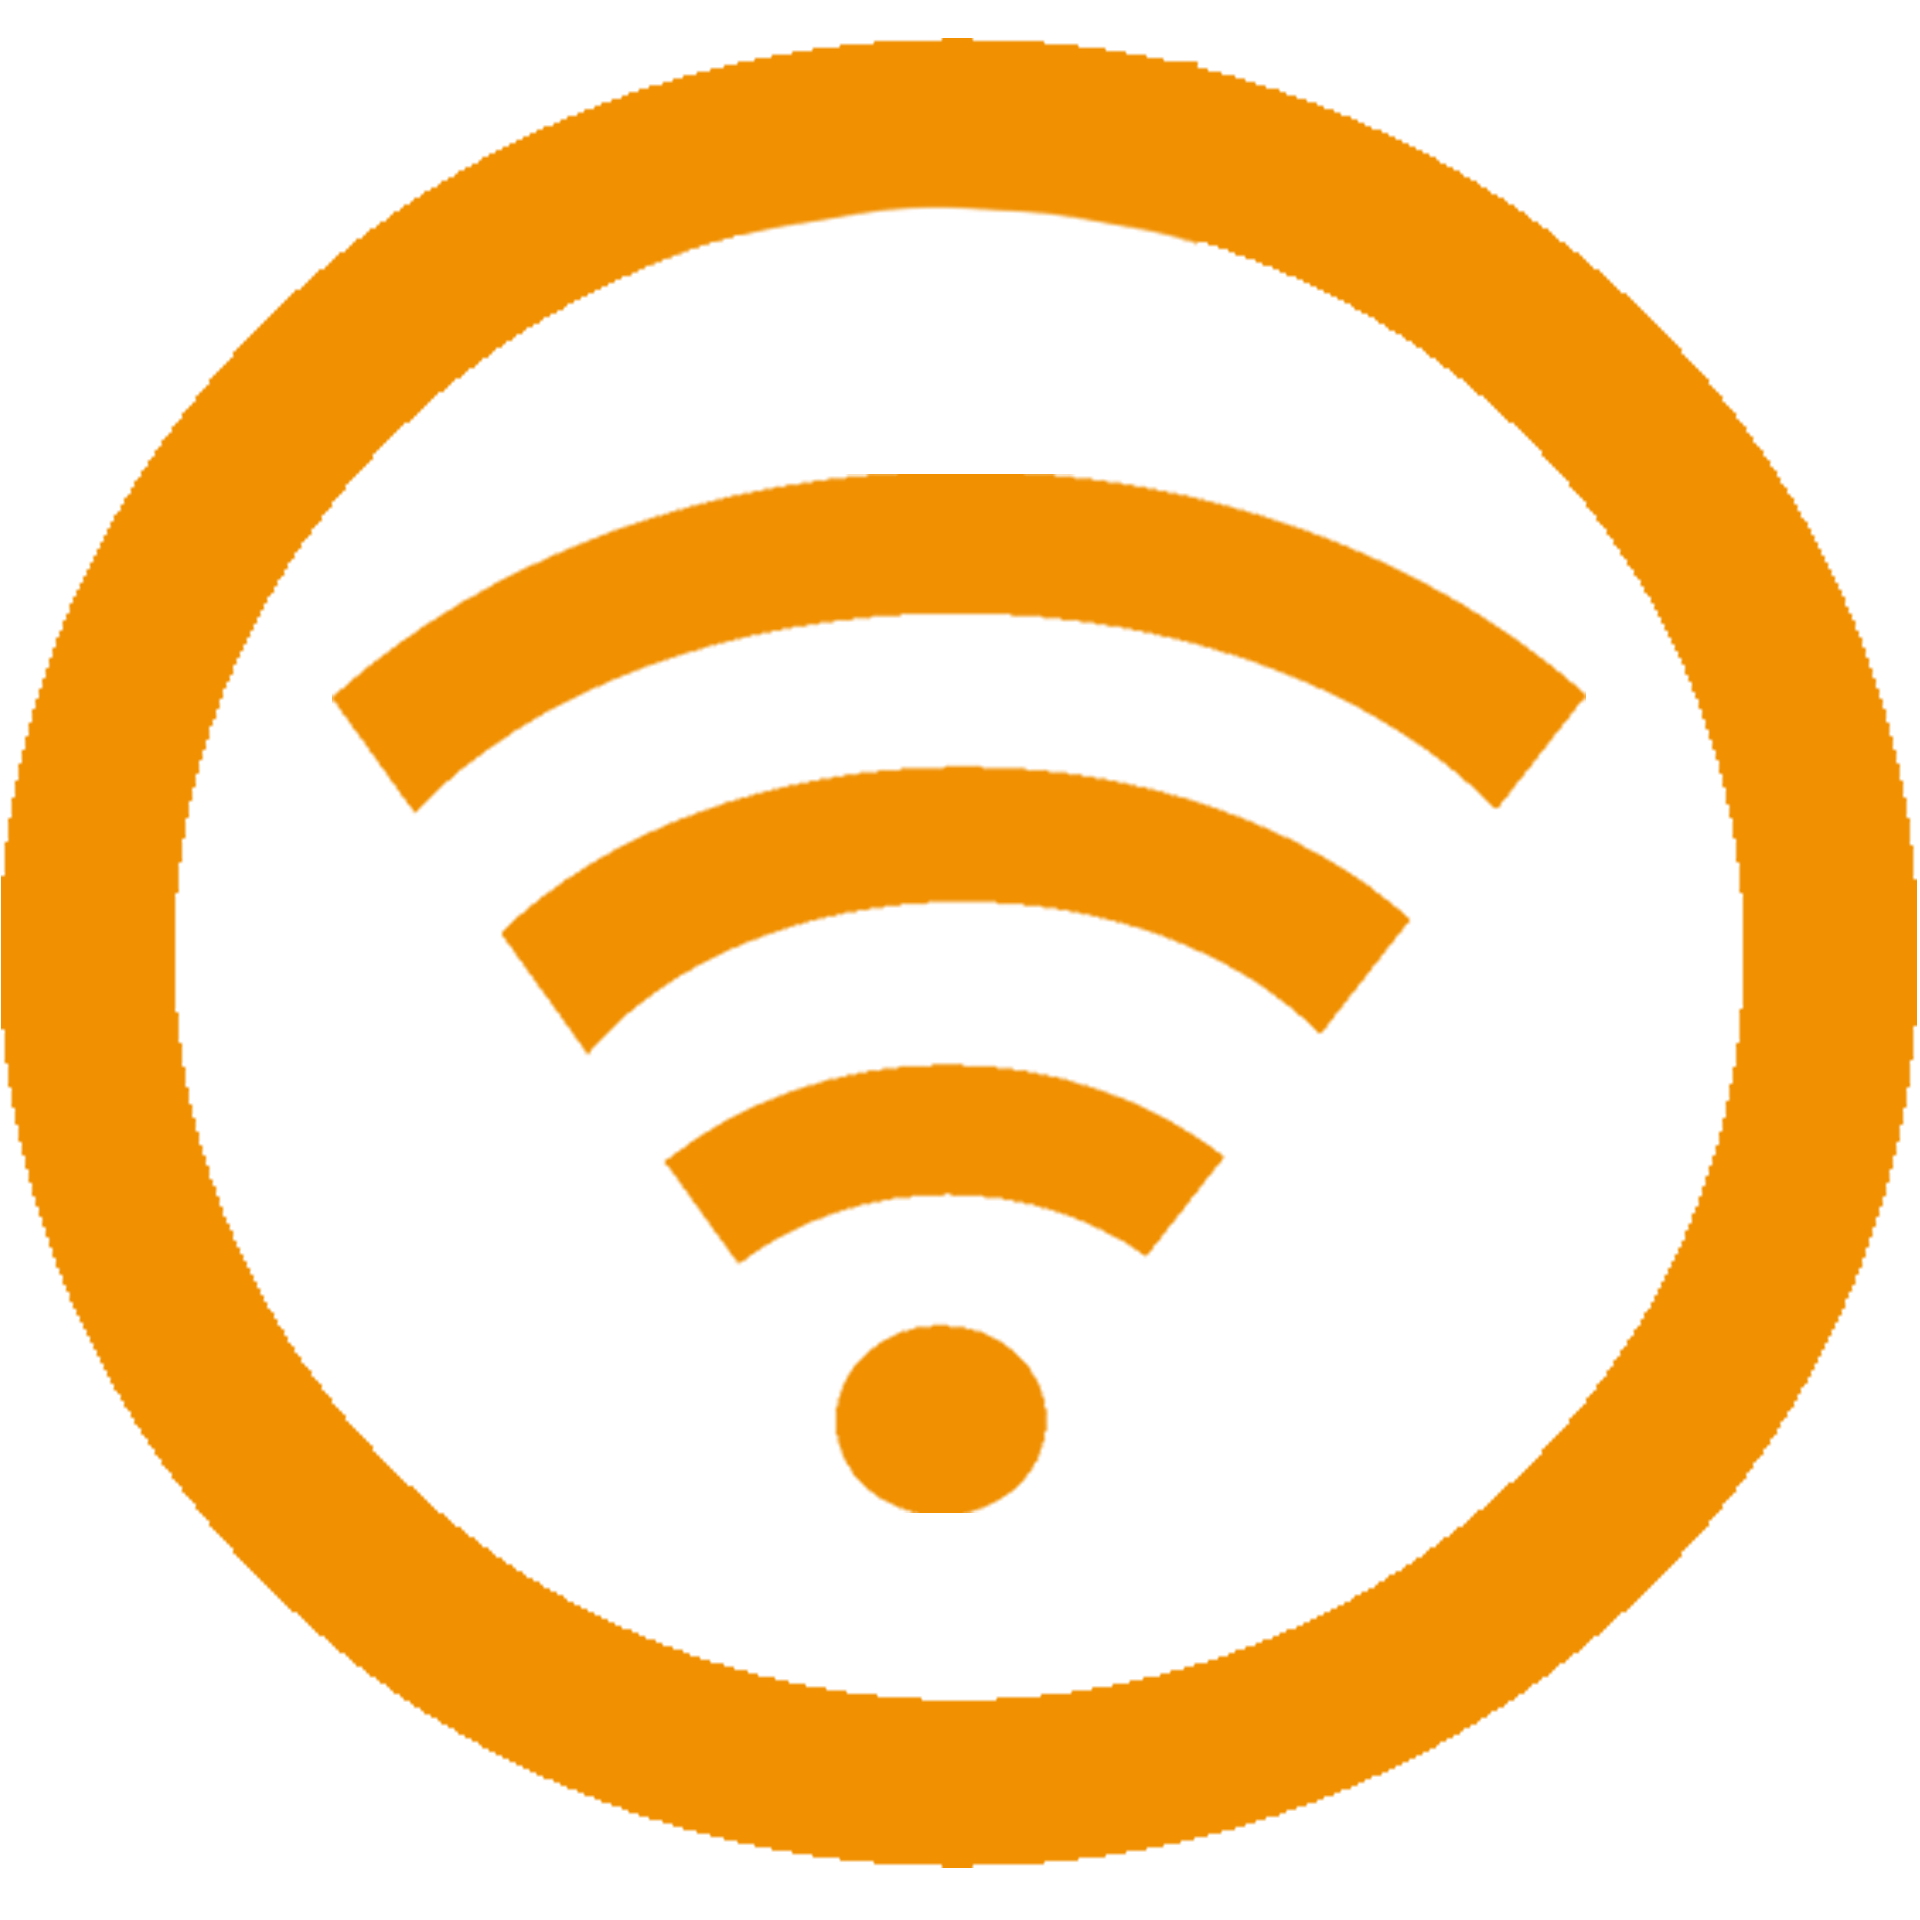 Wifi icon png. Free transparent download hd